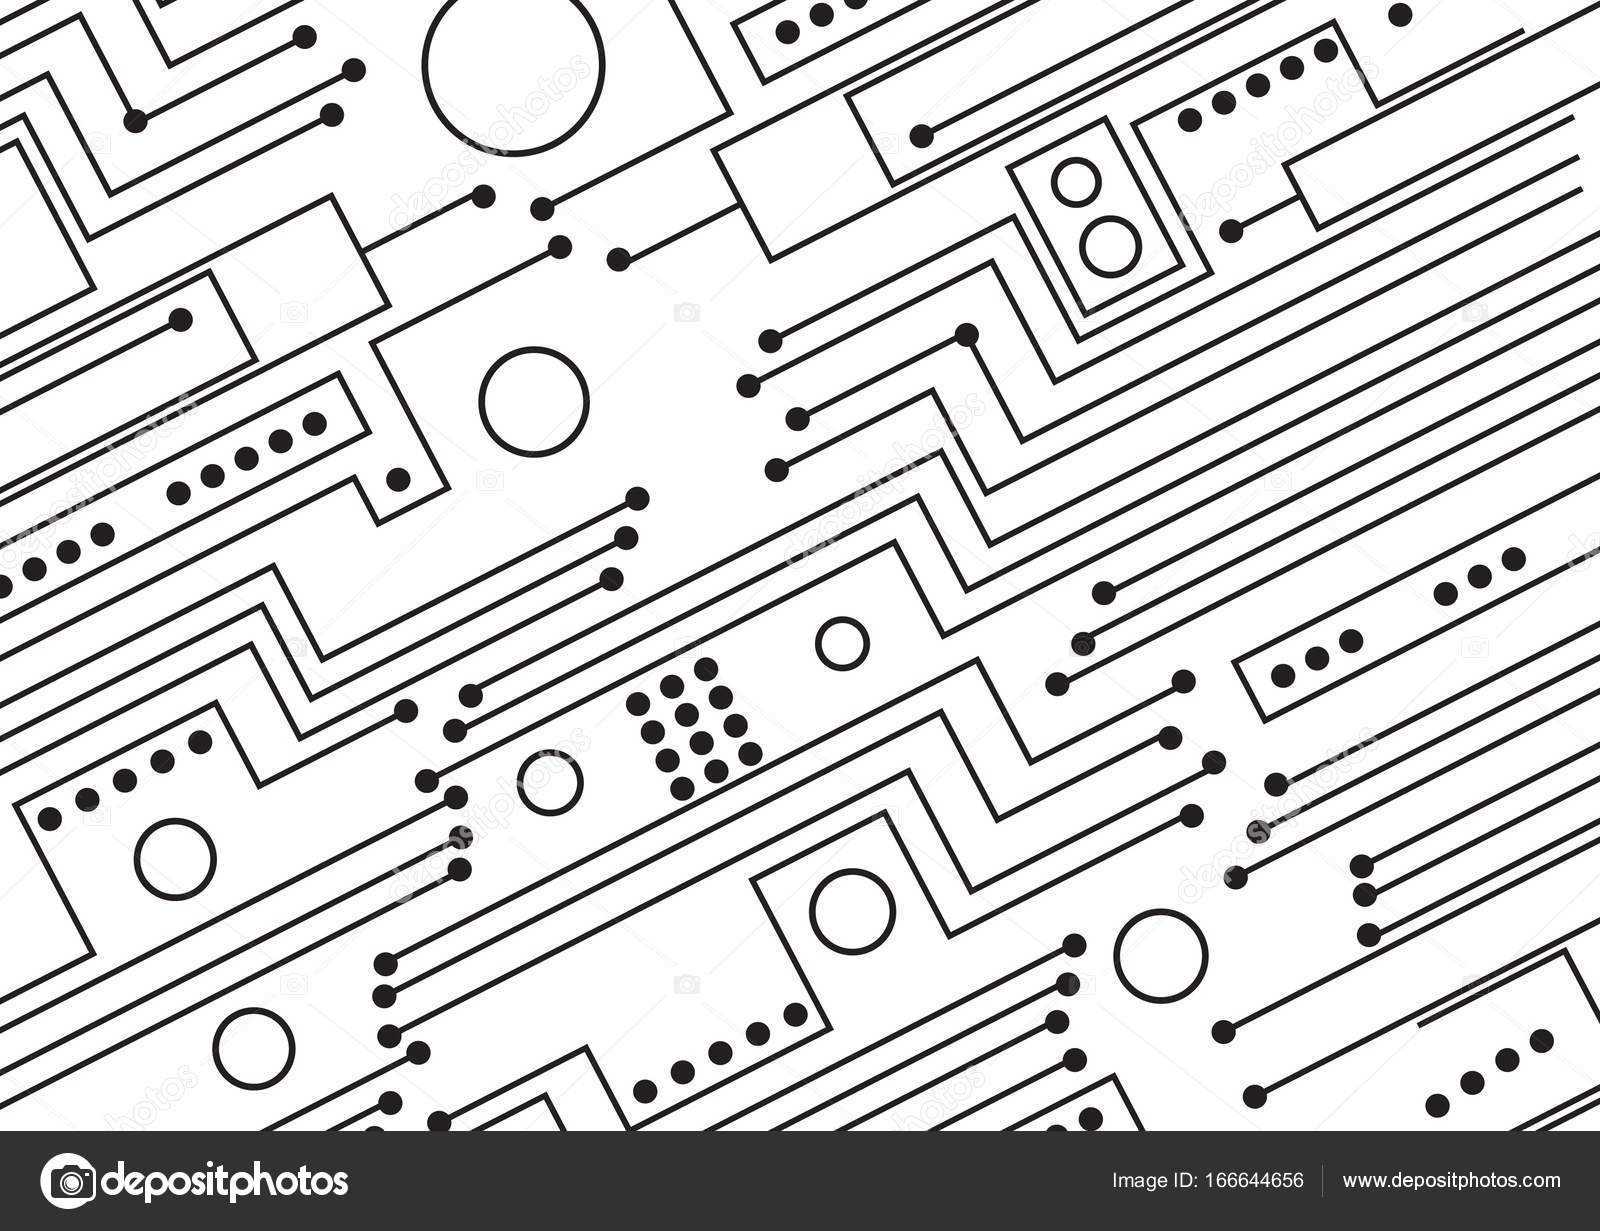 computer circuit board illustration  u2014 stock photo  u00a9 jamesstar  166644656